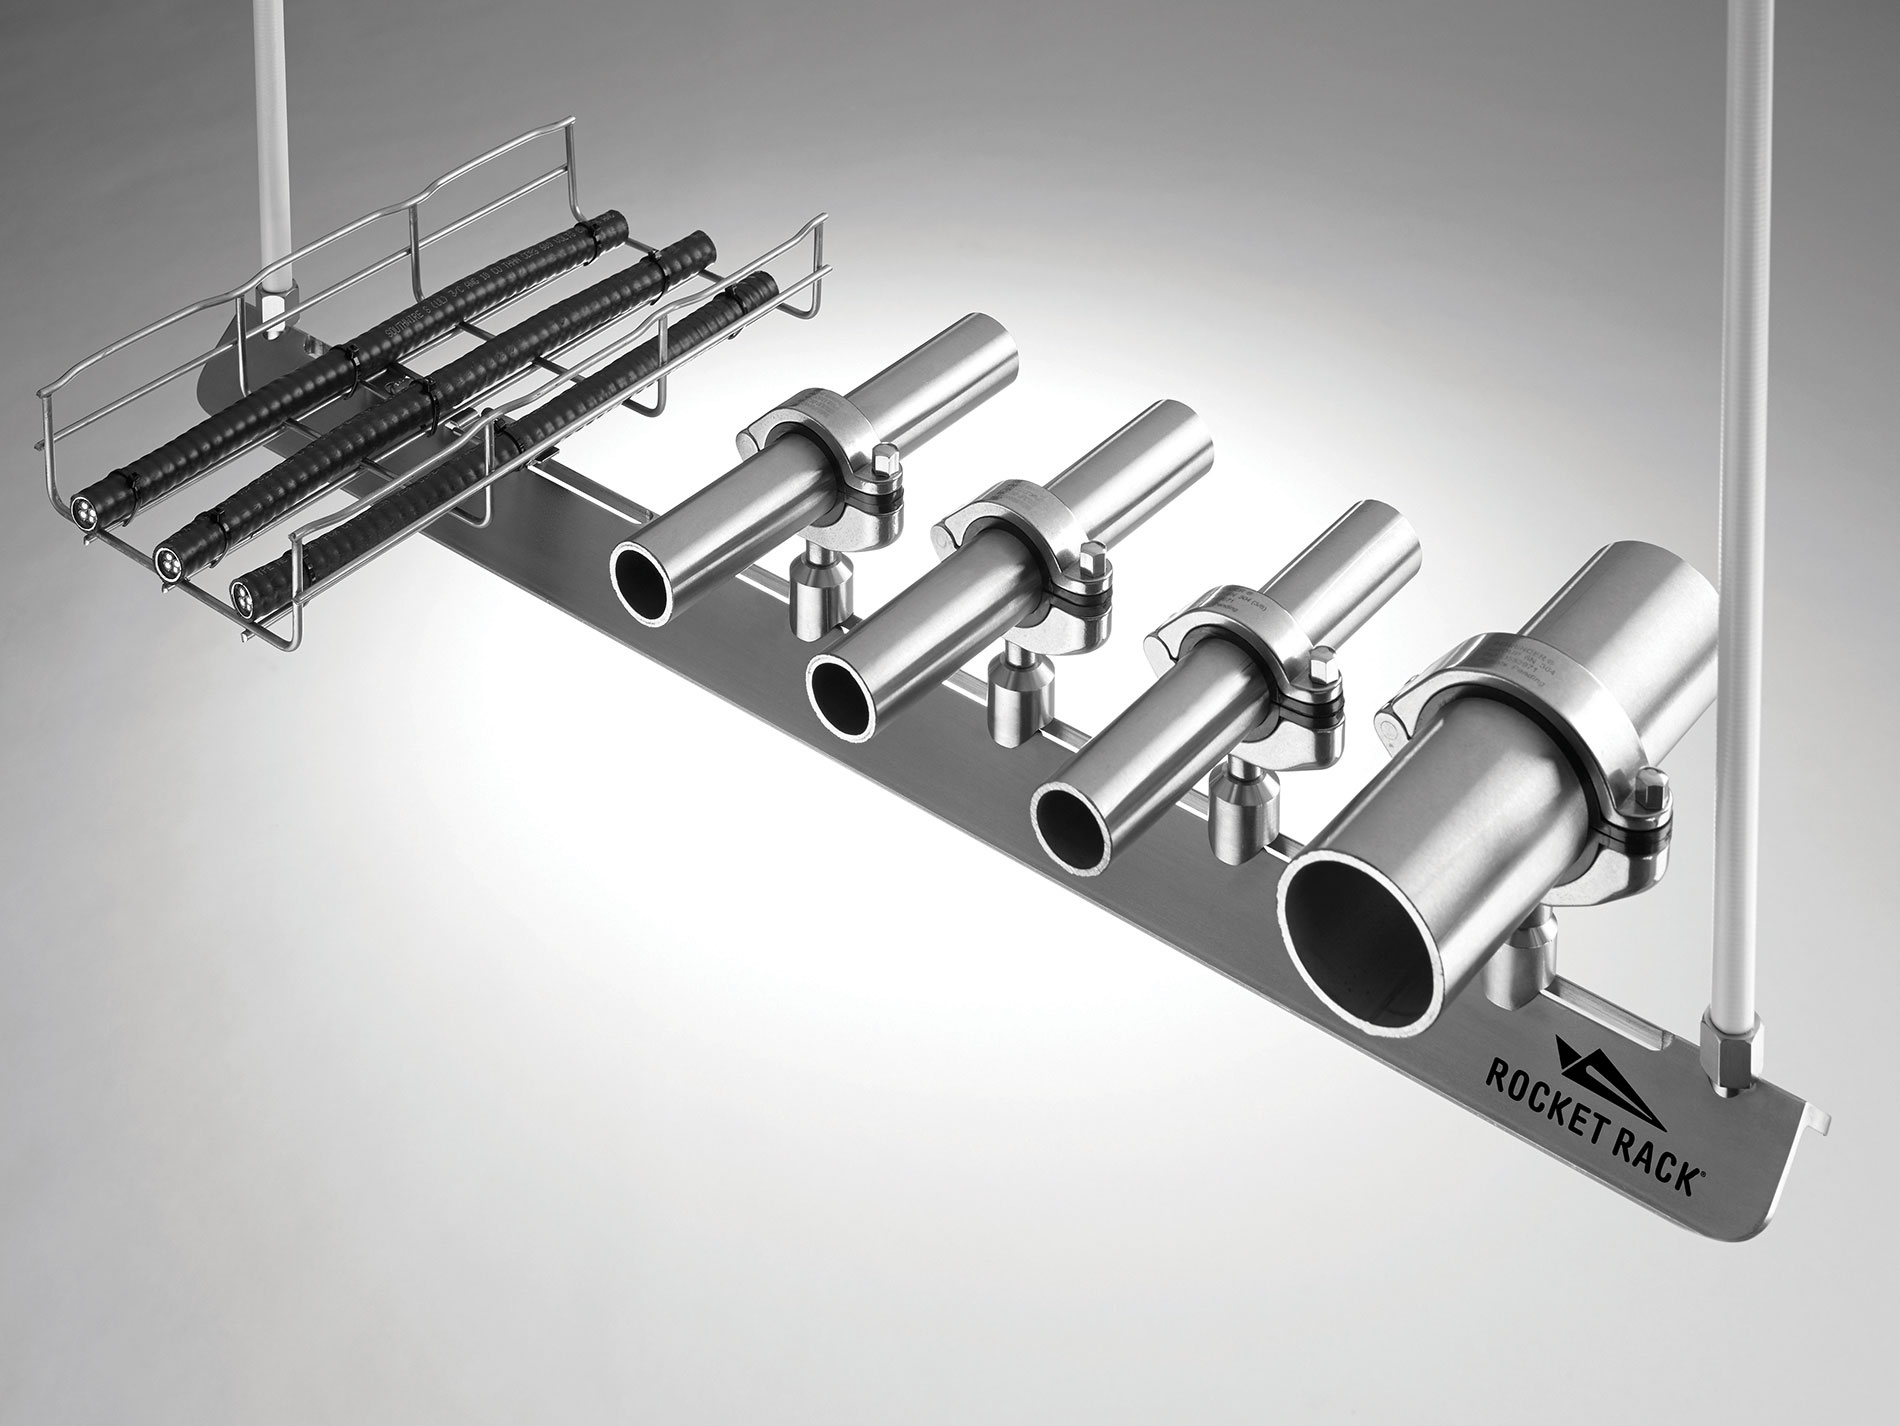 Rocket Rack's patented sanitary support system for conduit, process pipe and cable tray is designed for the food and beverage, pharmaceutical, consumer products and cosmetics industries.